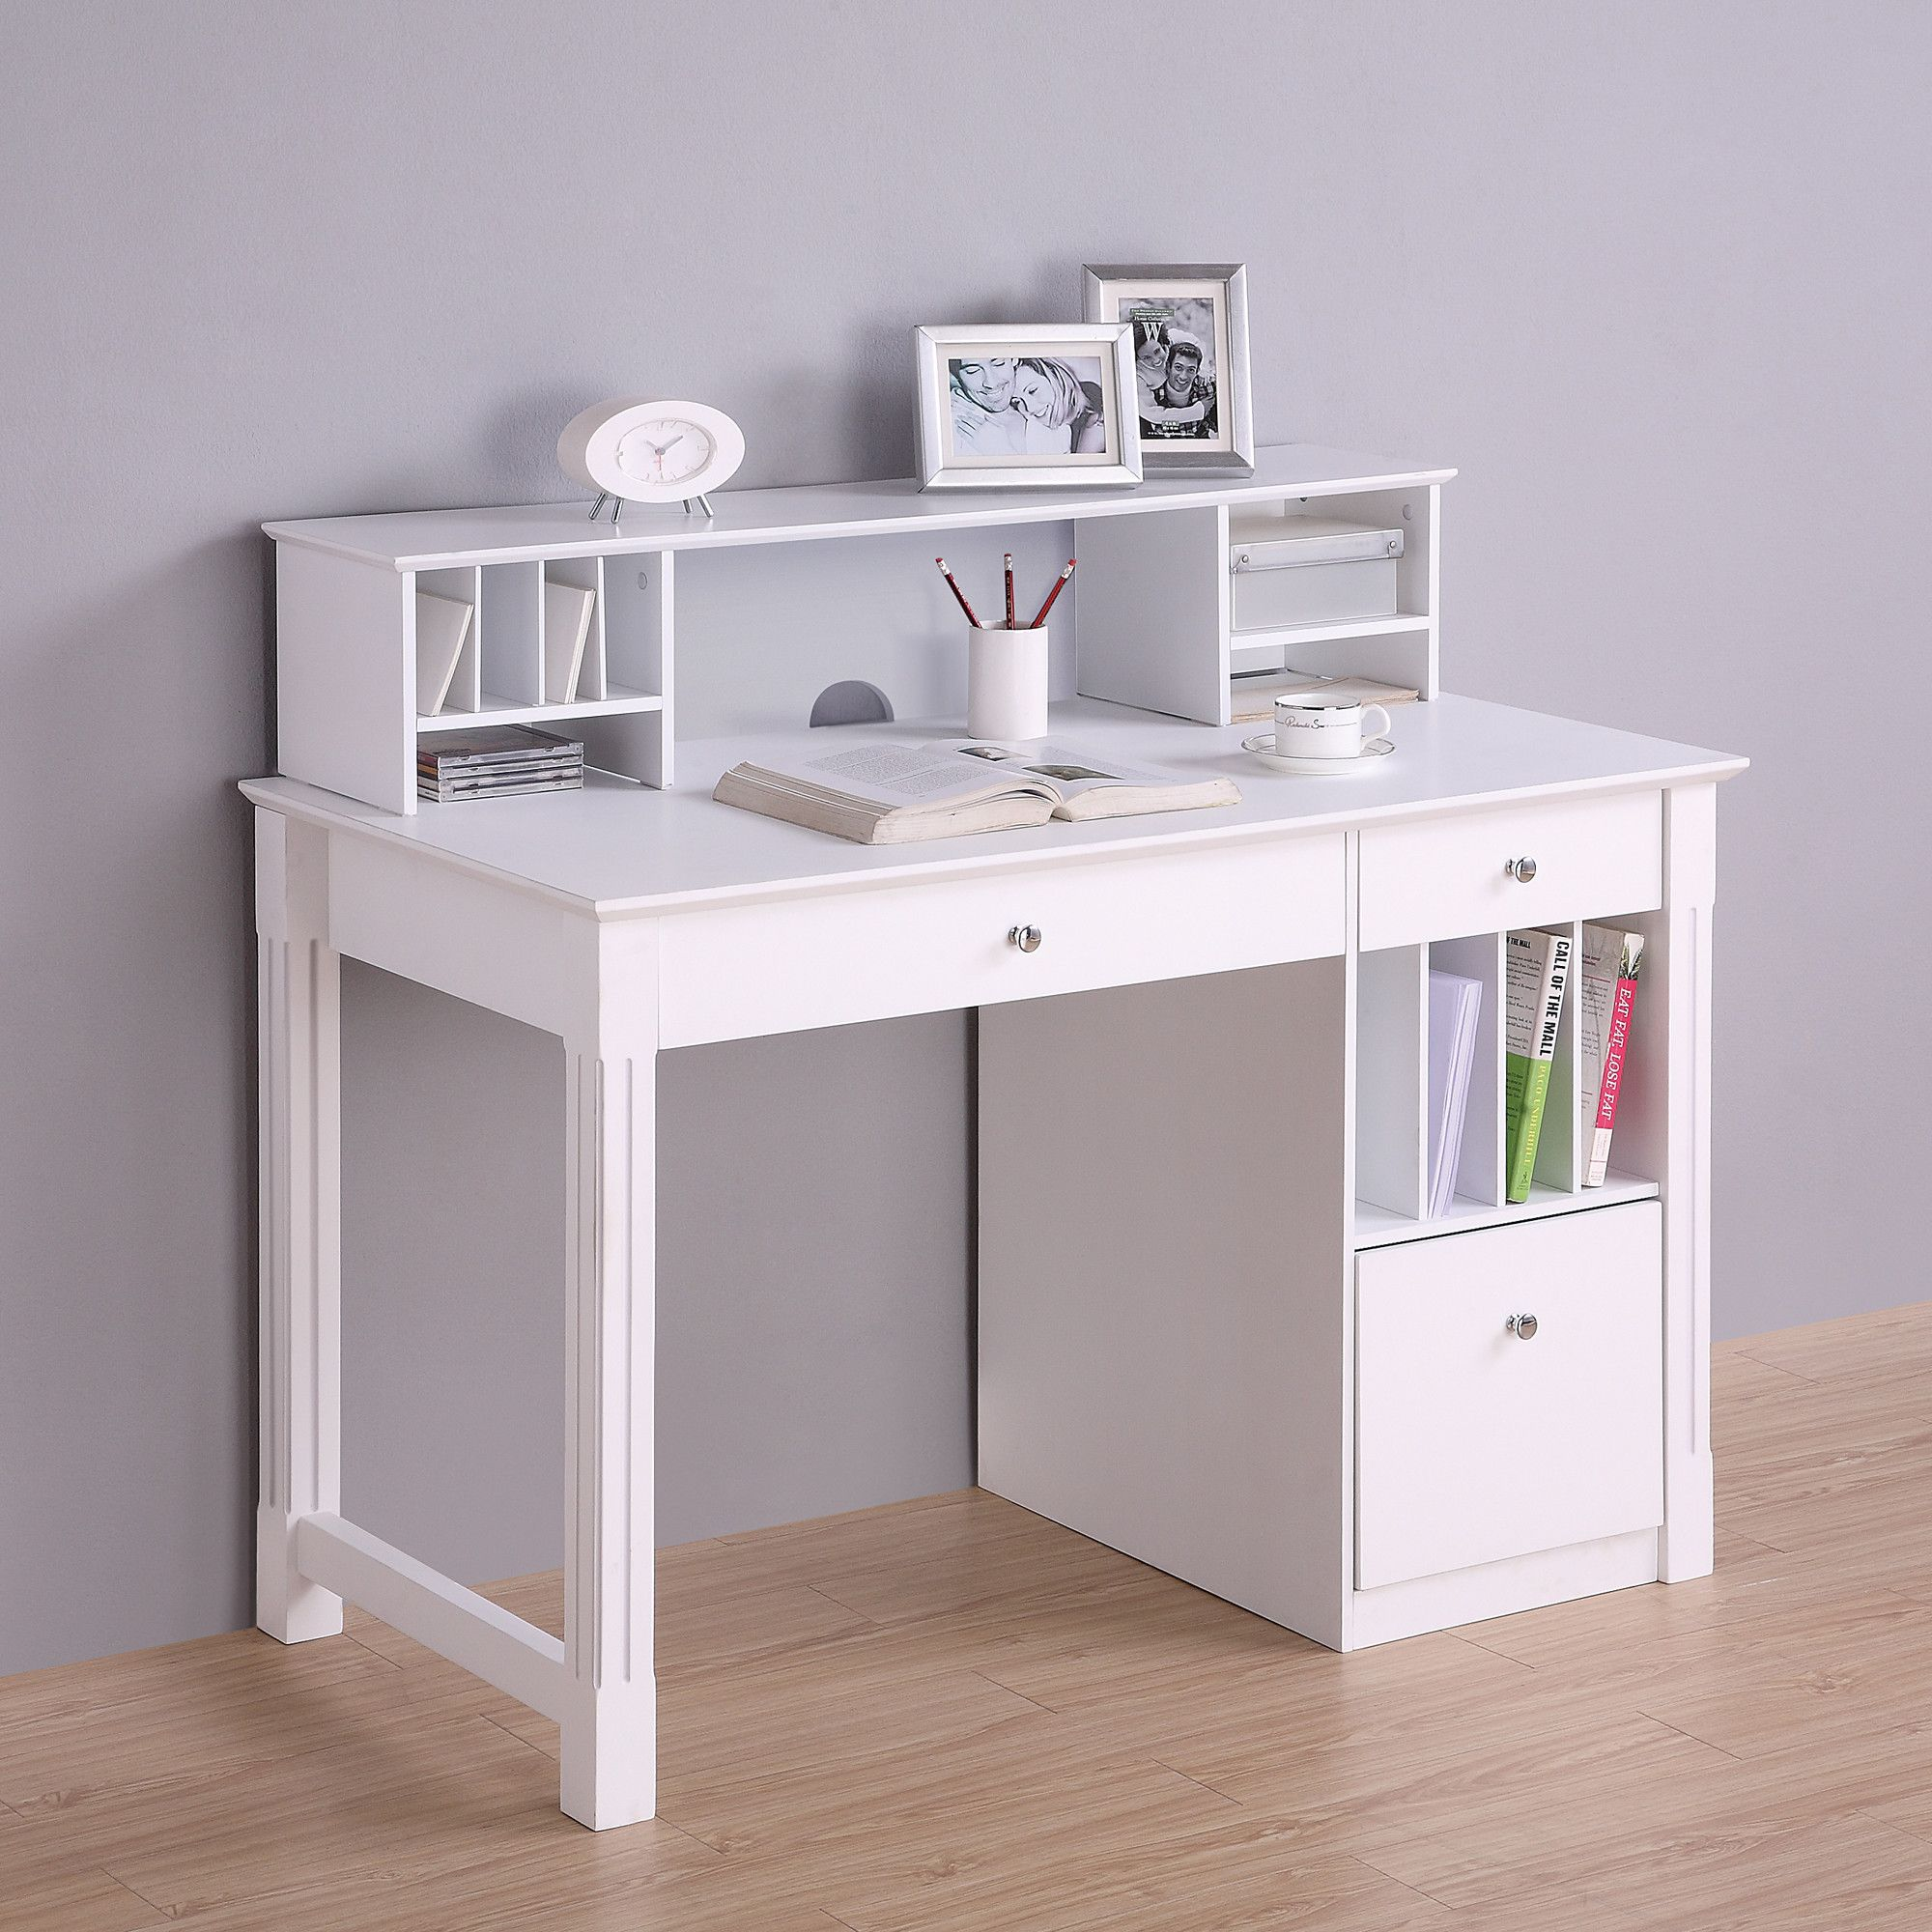 Deluxe Computer Desk with Hutch | Desks, Lofts and Writing desk